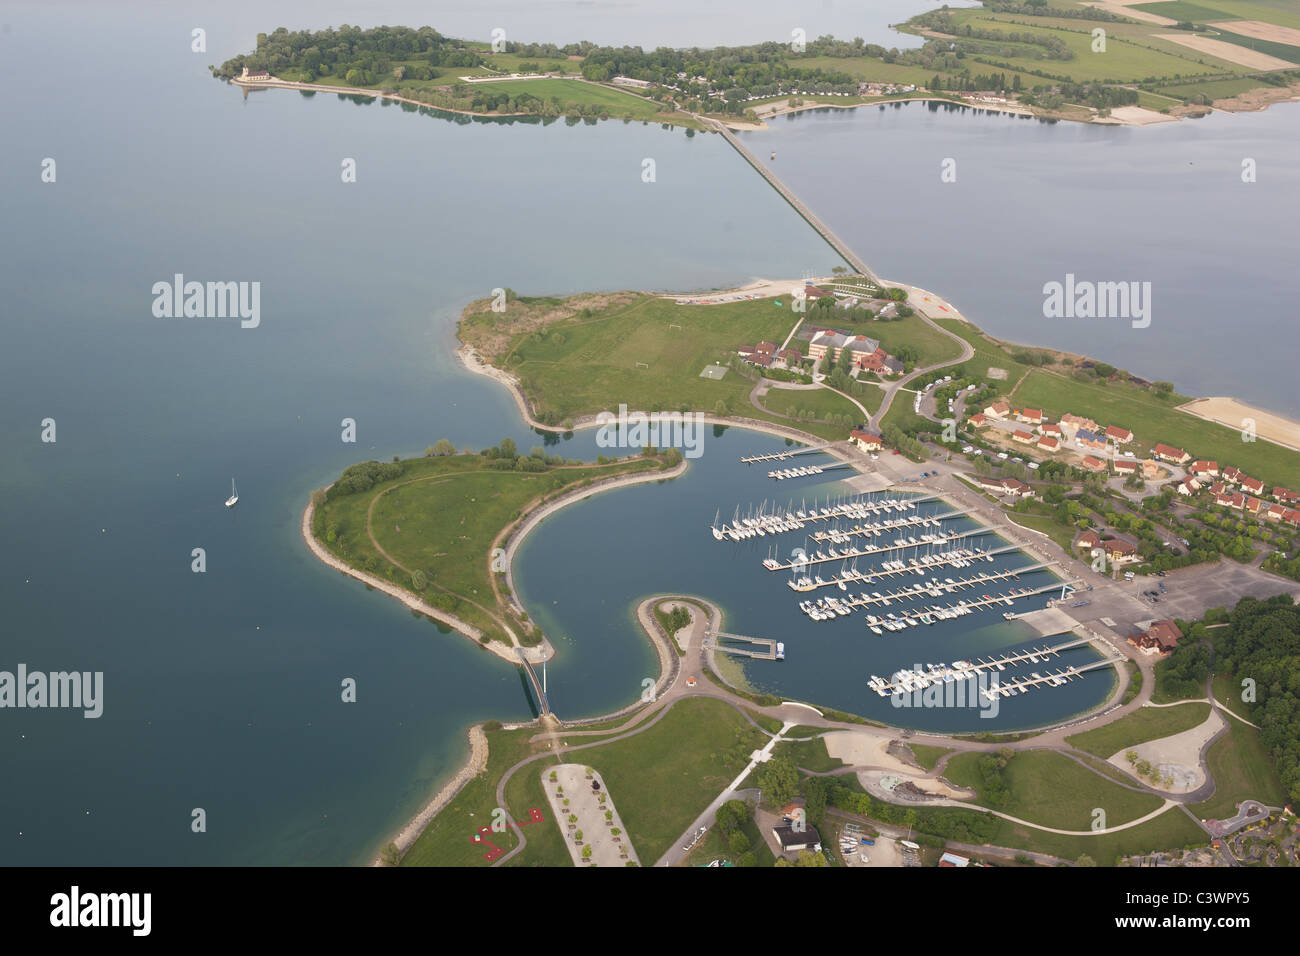 LAC DU DER MARINA (aerial view). Reservoir built to regulate the flow of the Marne River. Champagne-Ardenne, France. - Stock Image